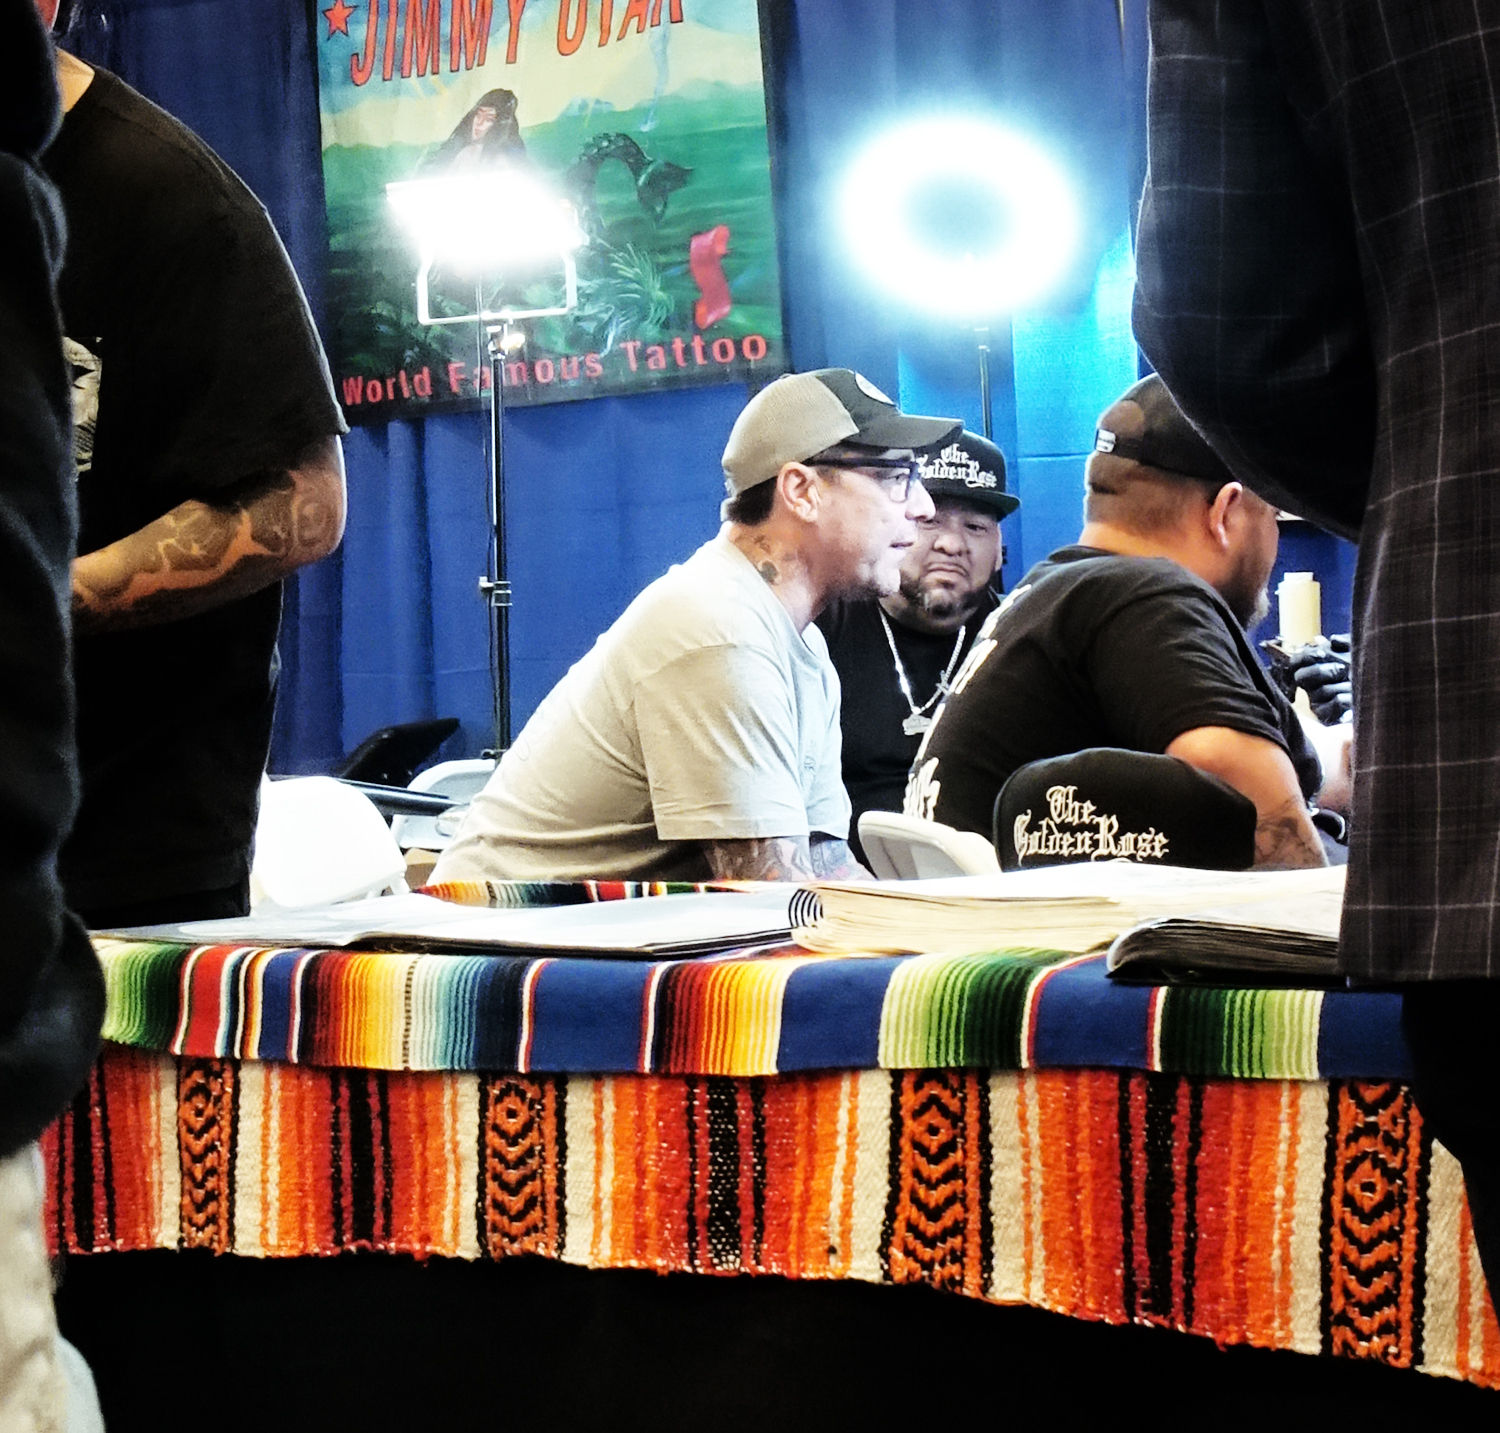 Feather Falls tattoo expo organizer Chris Earl talking to members of Modesto's The Golden Rose tattoo shop